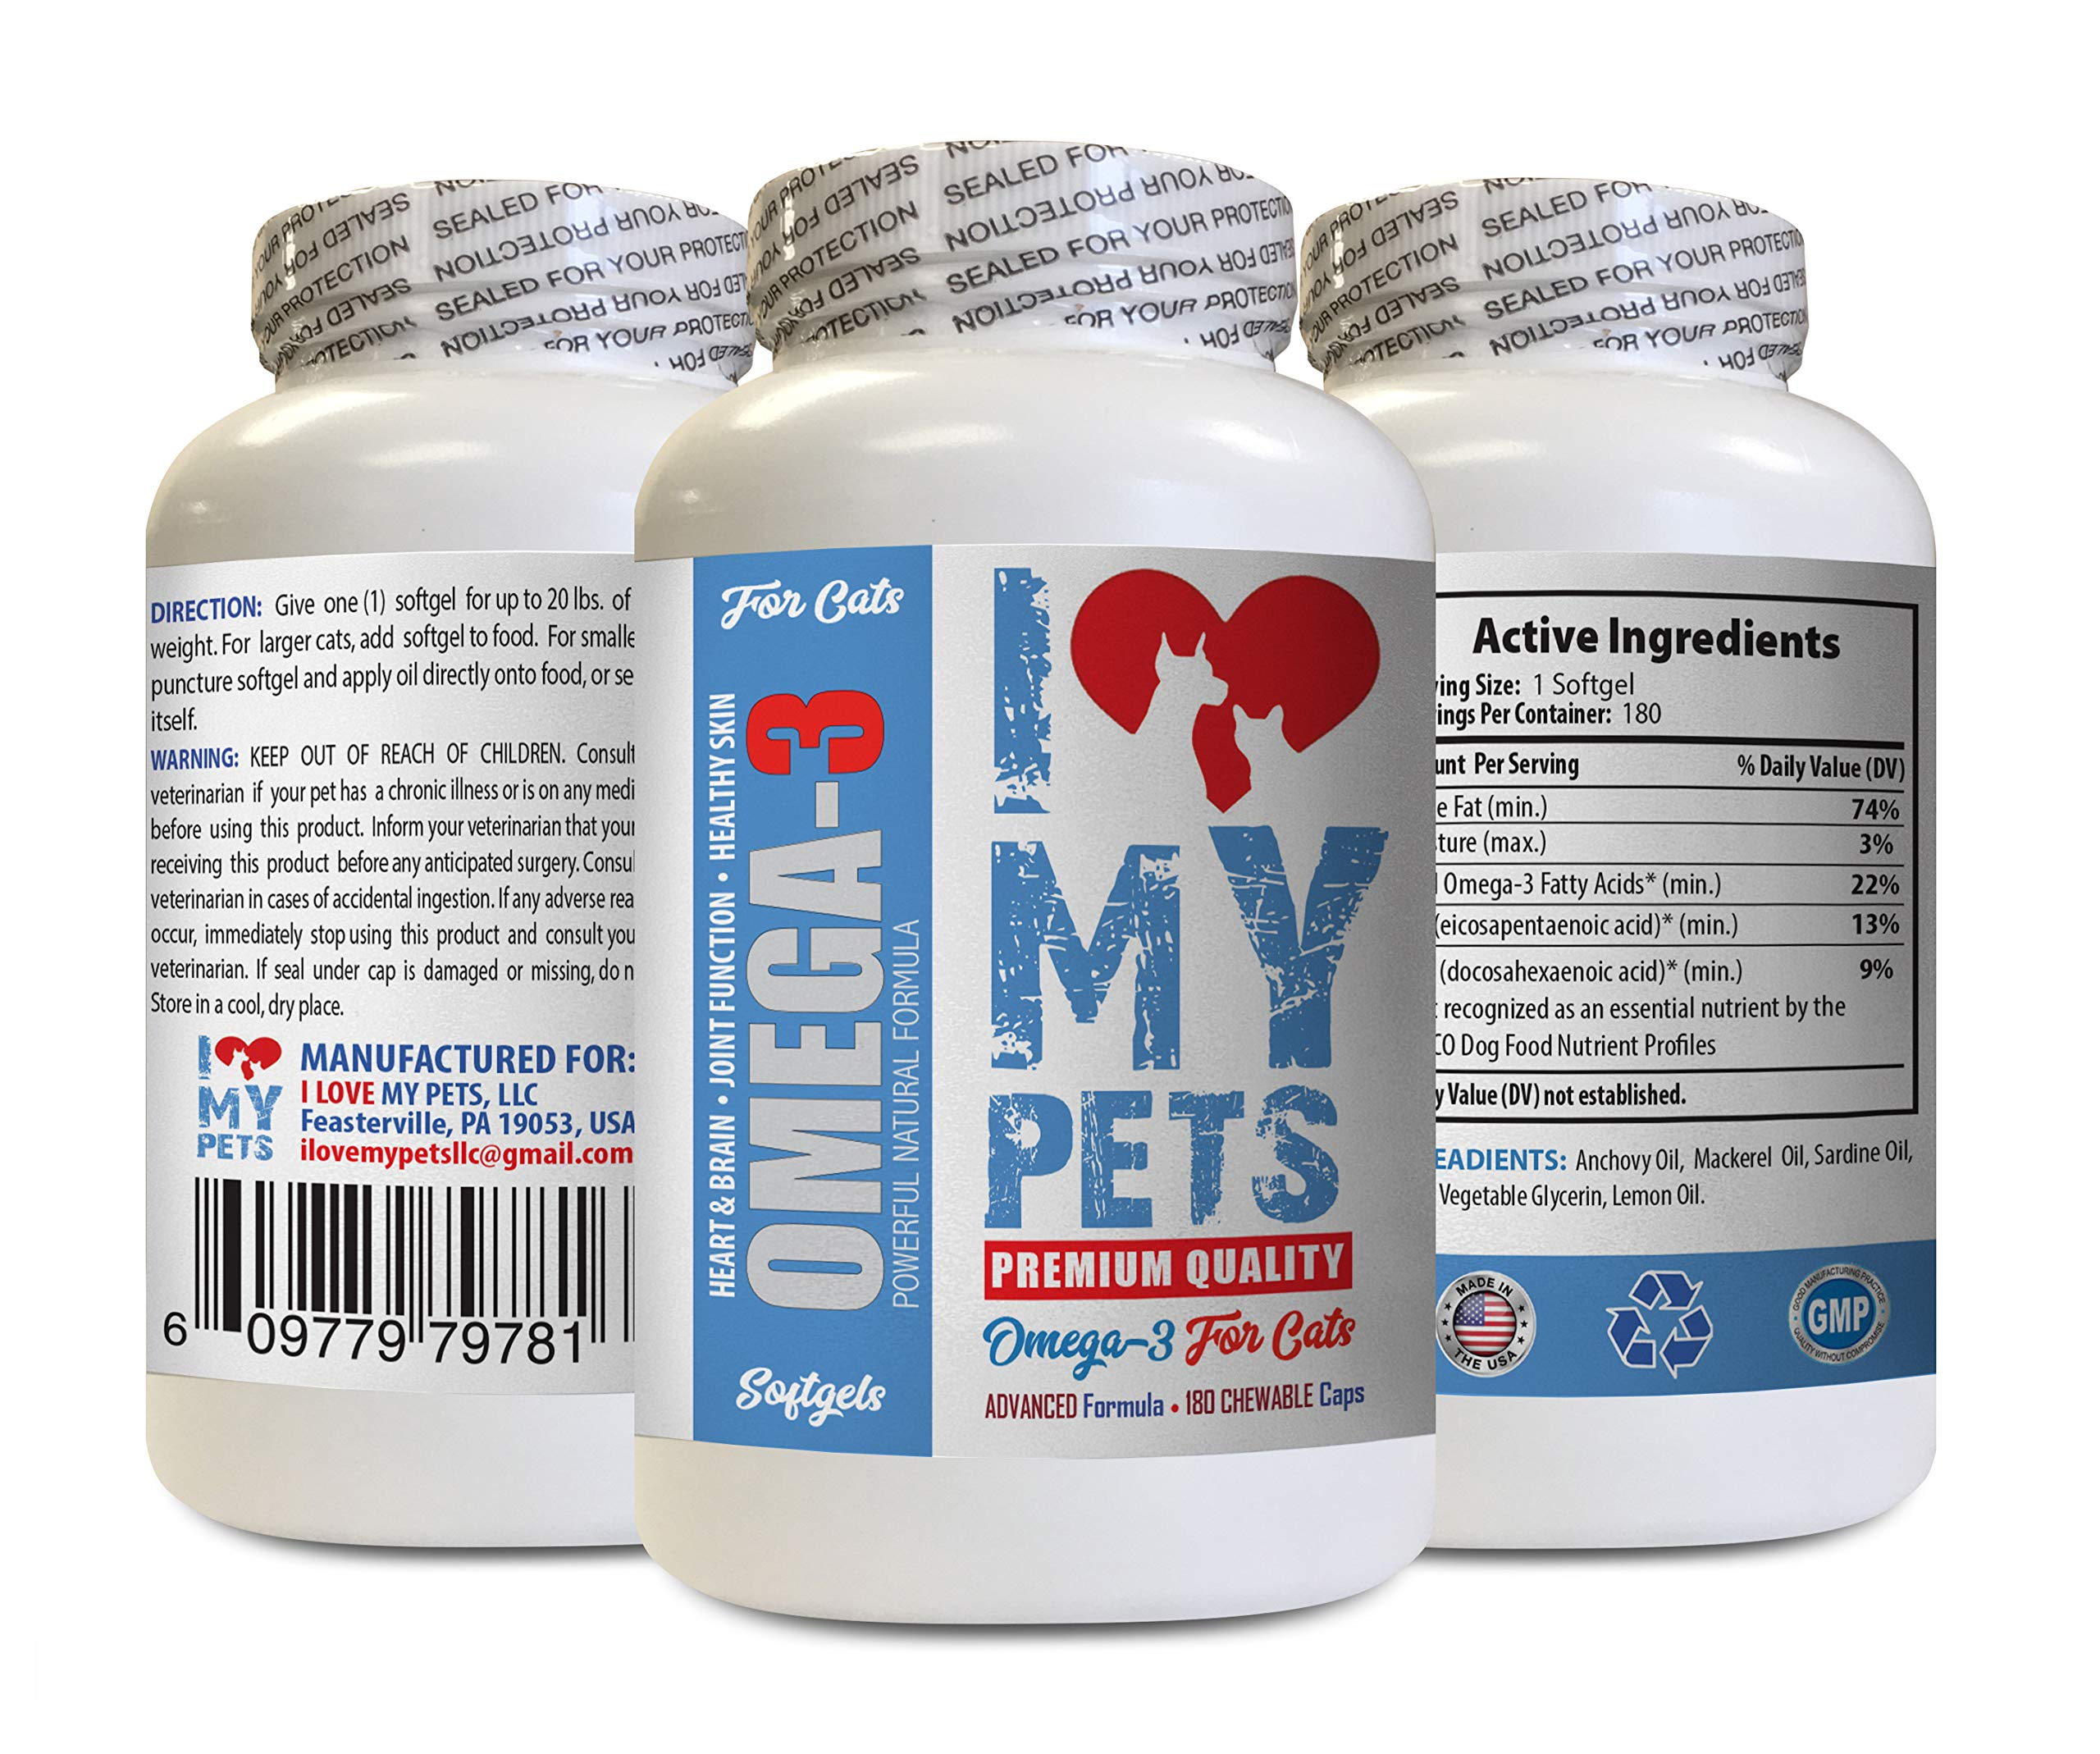 I LOVE MY PETS LLC Omega 3 Cats - Omega 3 Fatty ACIDS for Cats - Best Health Option - Premium - Cats Joint Health - 180 Softgels (1 Bottle) by I LOVE MY PETS LLC